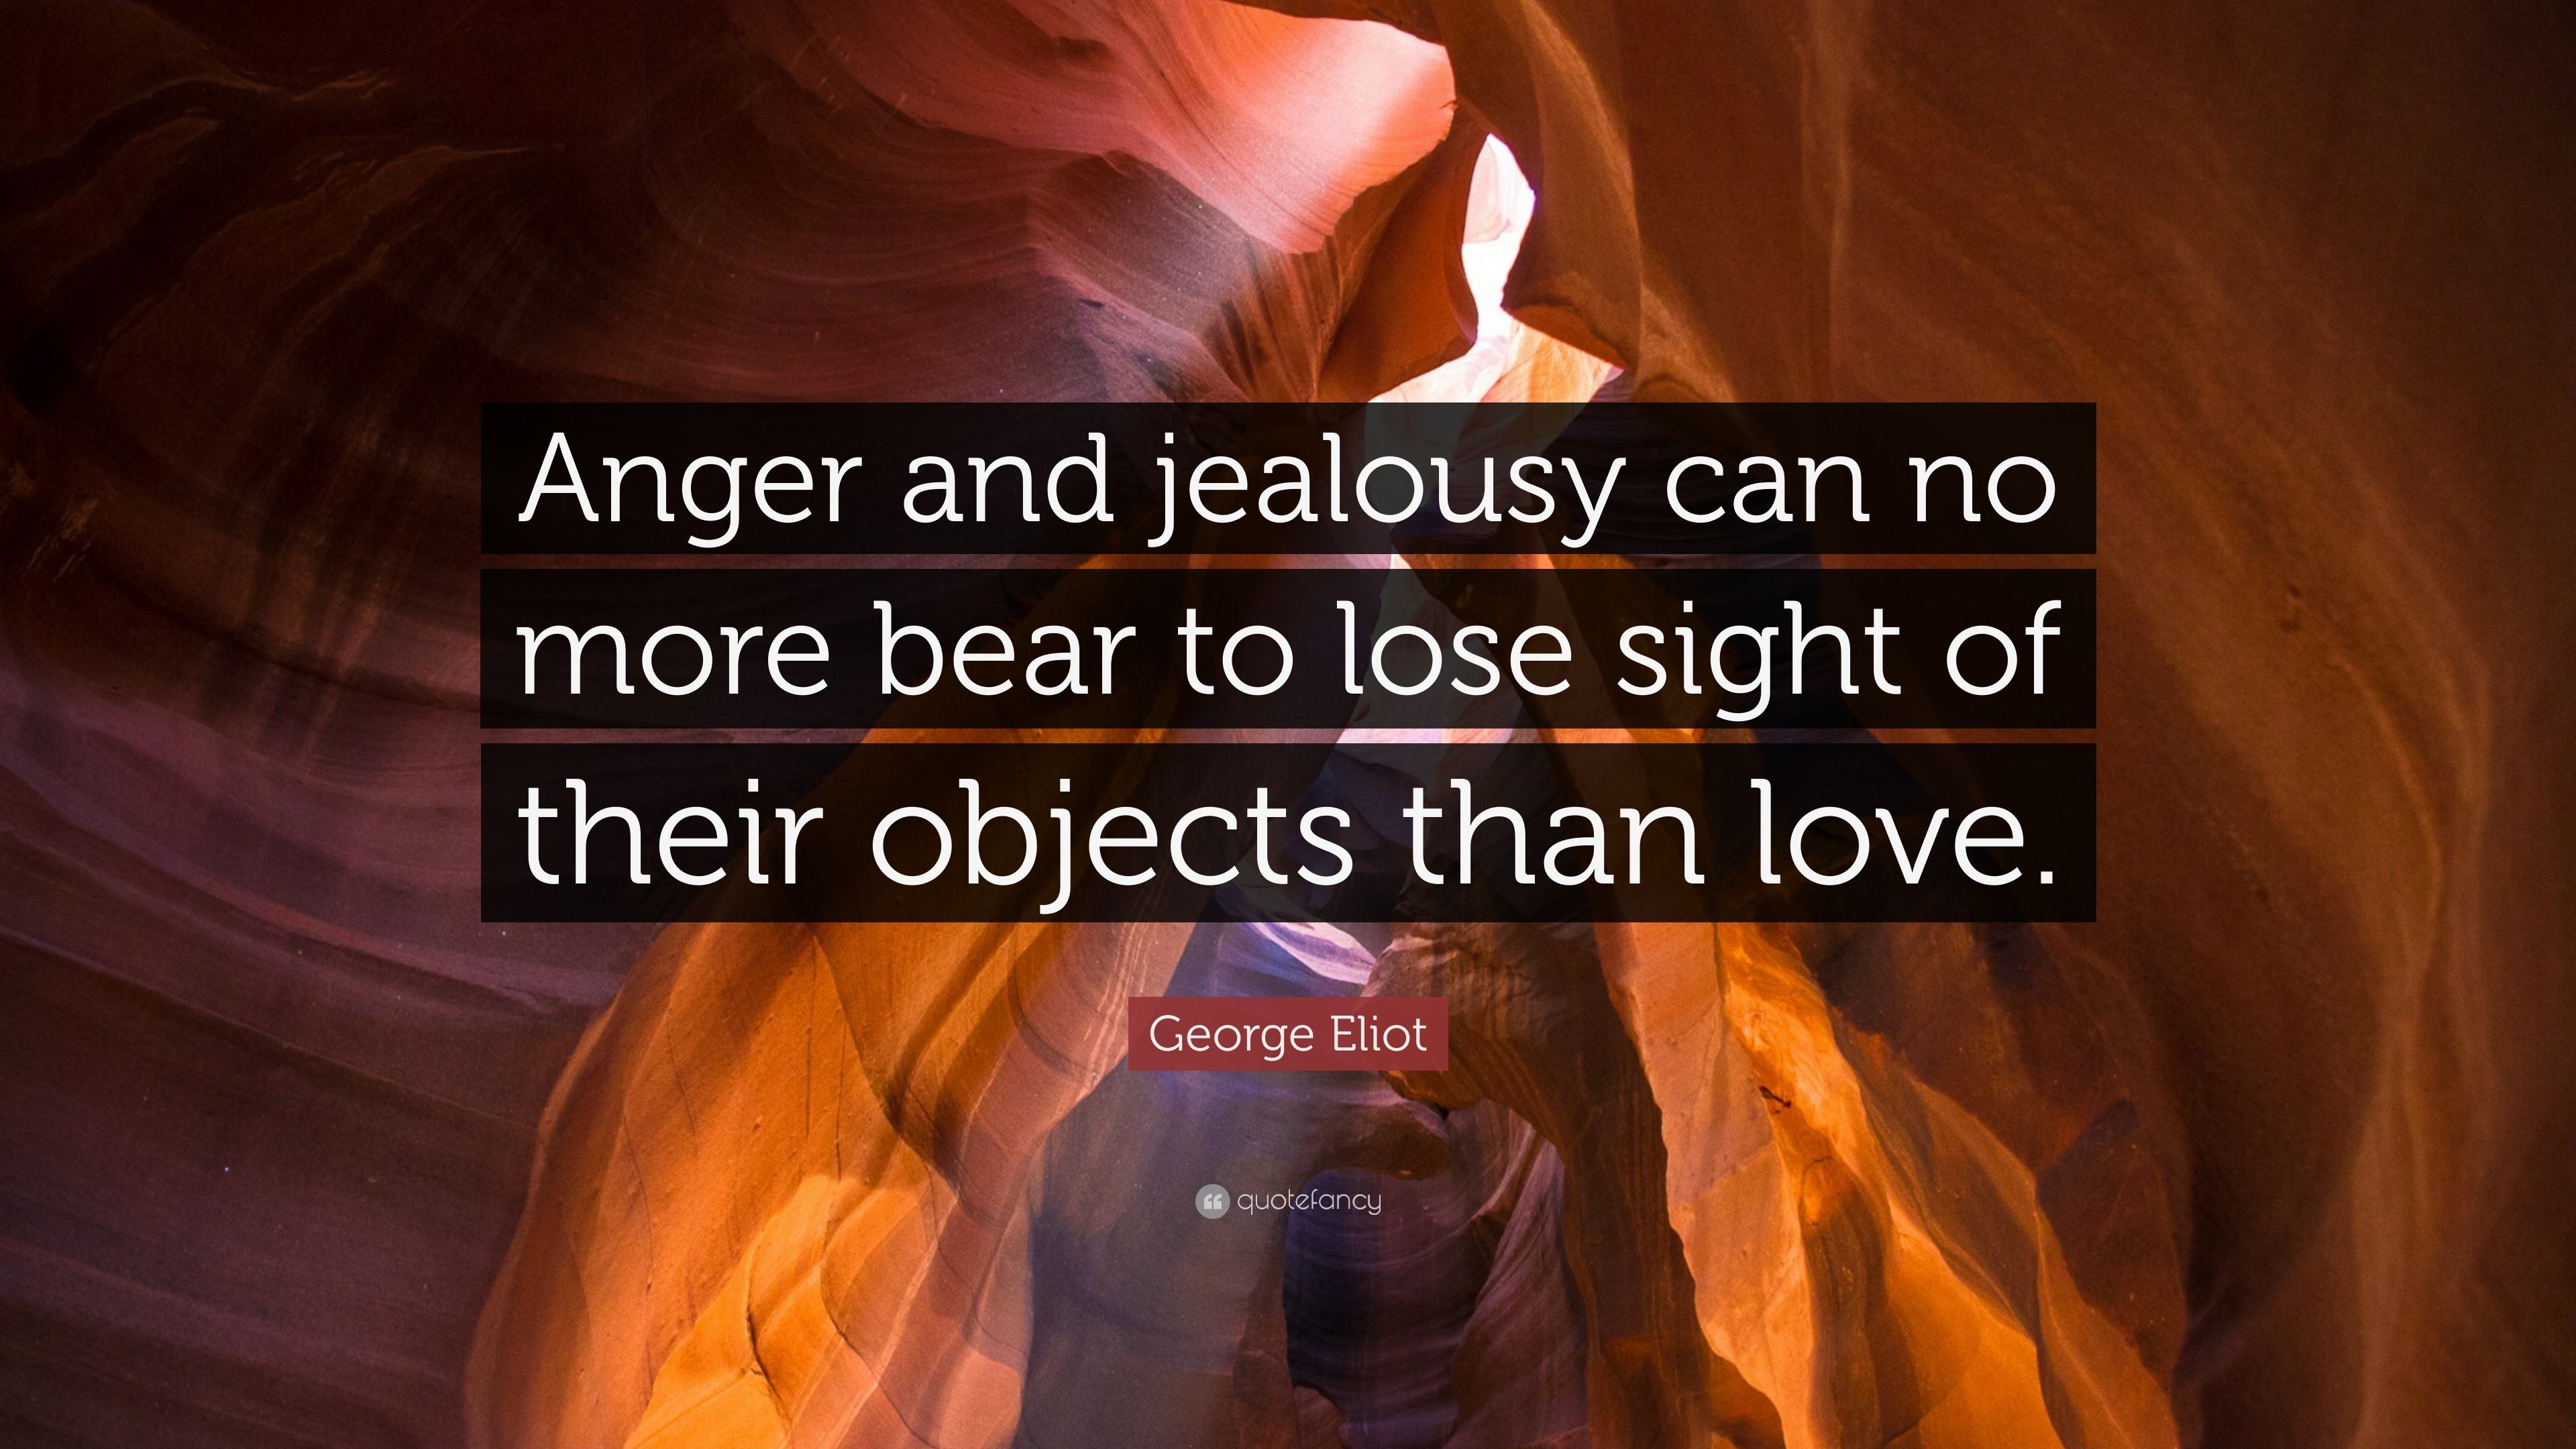 Beautiful George Eliot Quote: U201cAnger And Jealousy Can No More Bear To Lose Sight Of